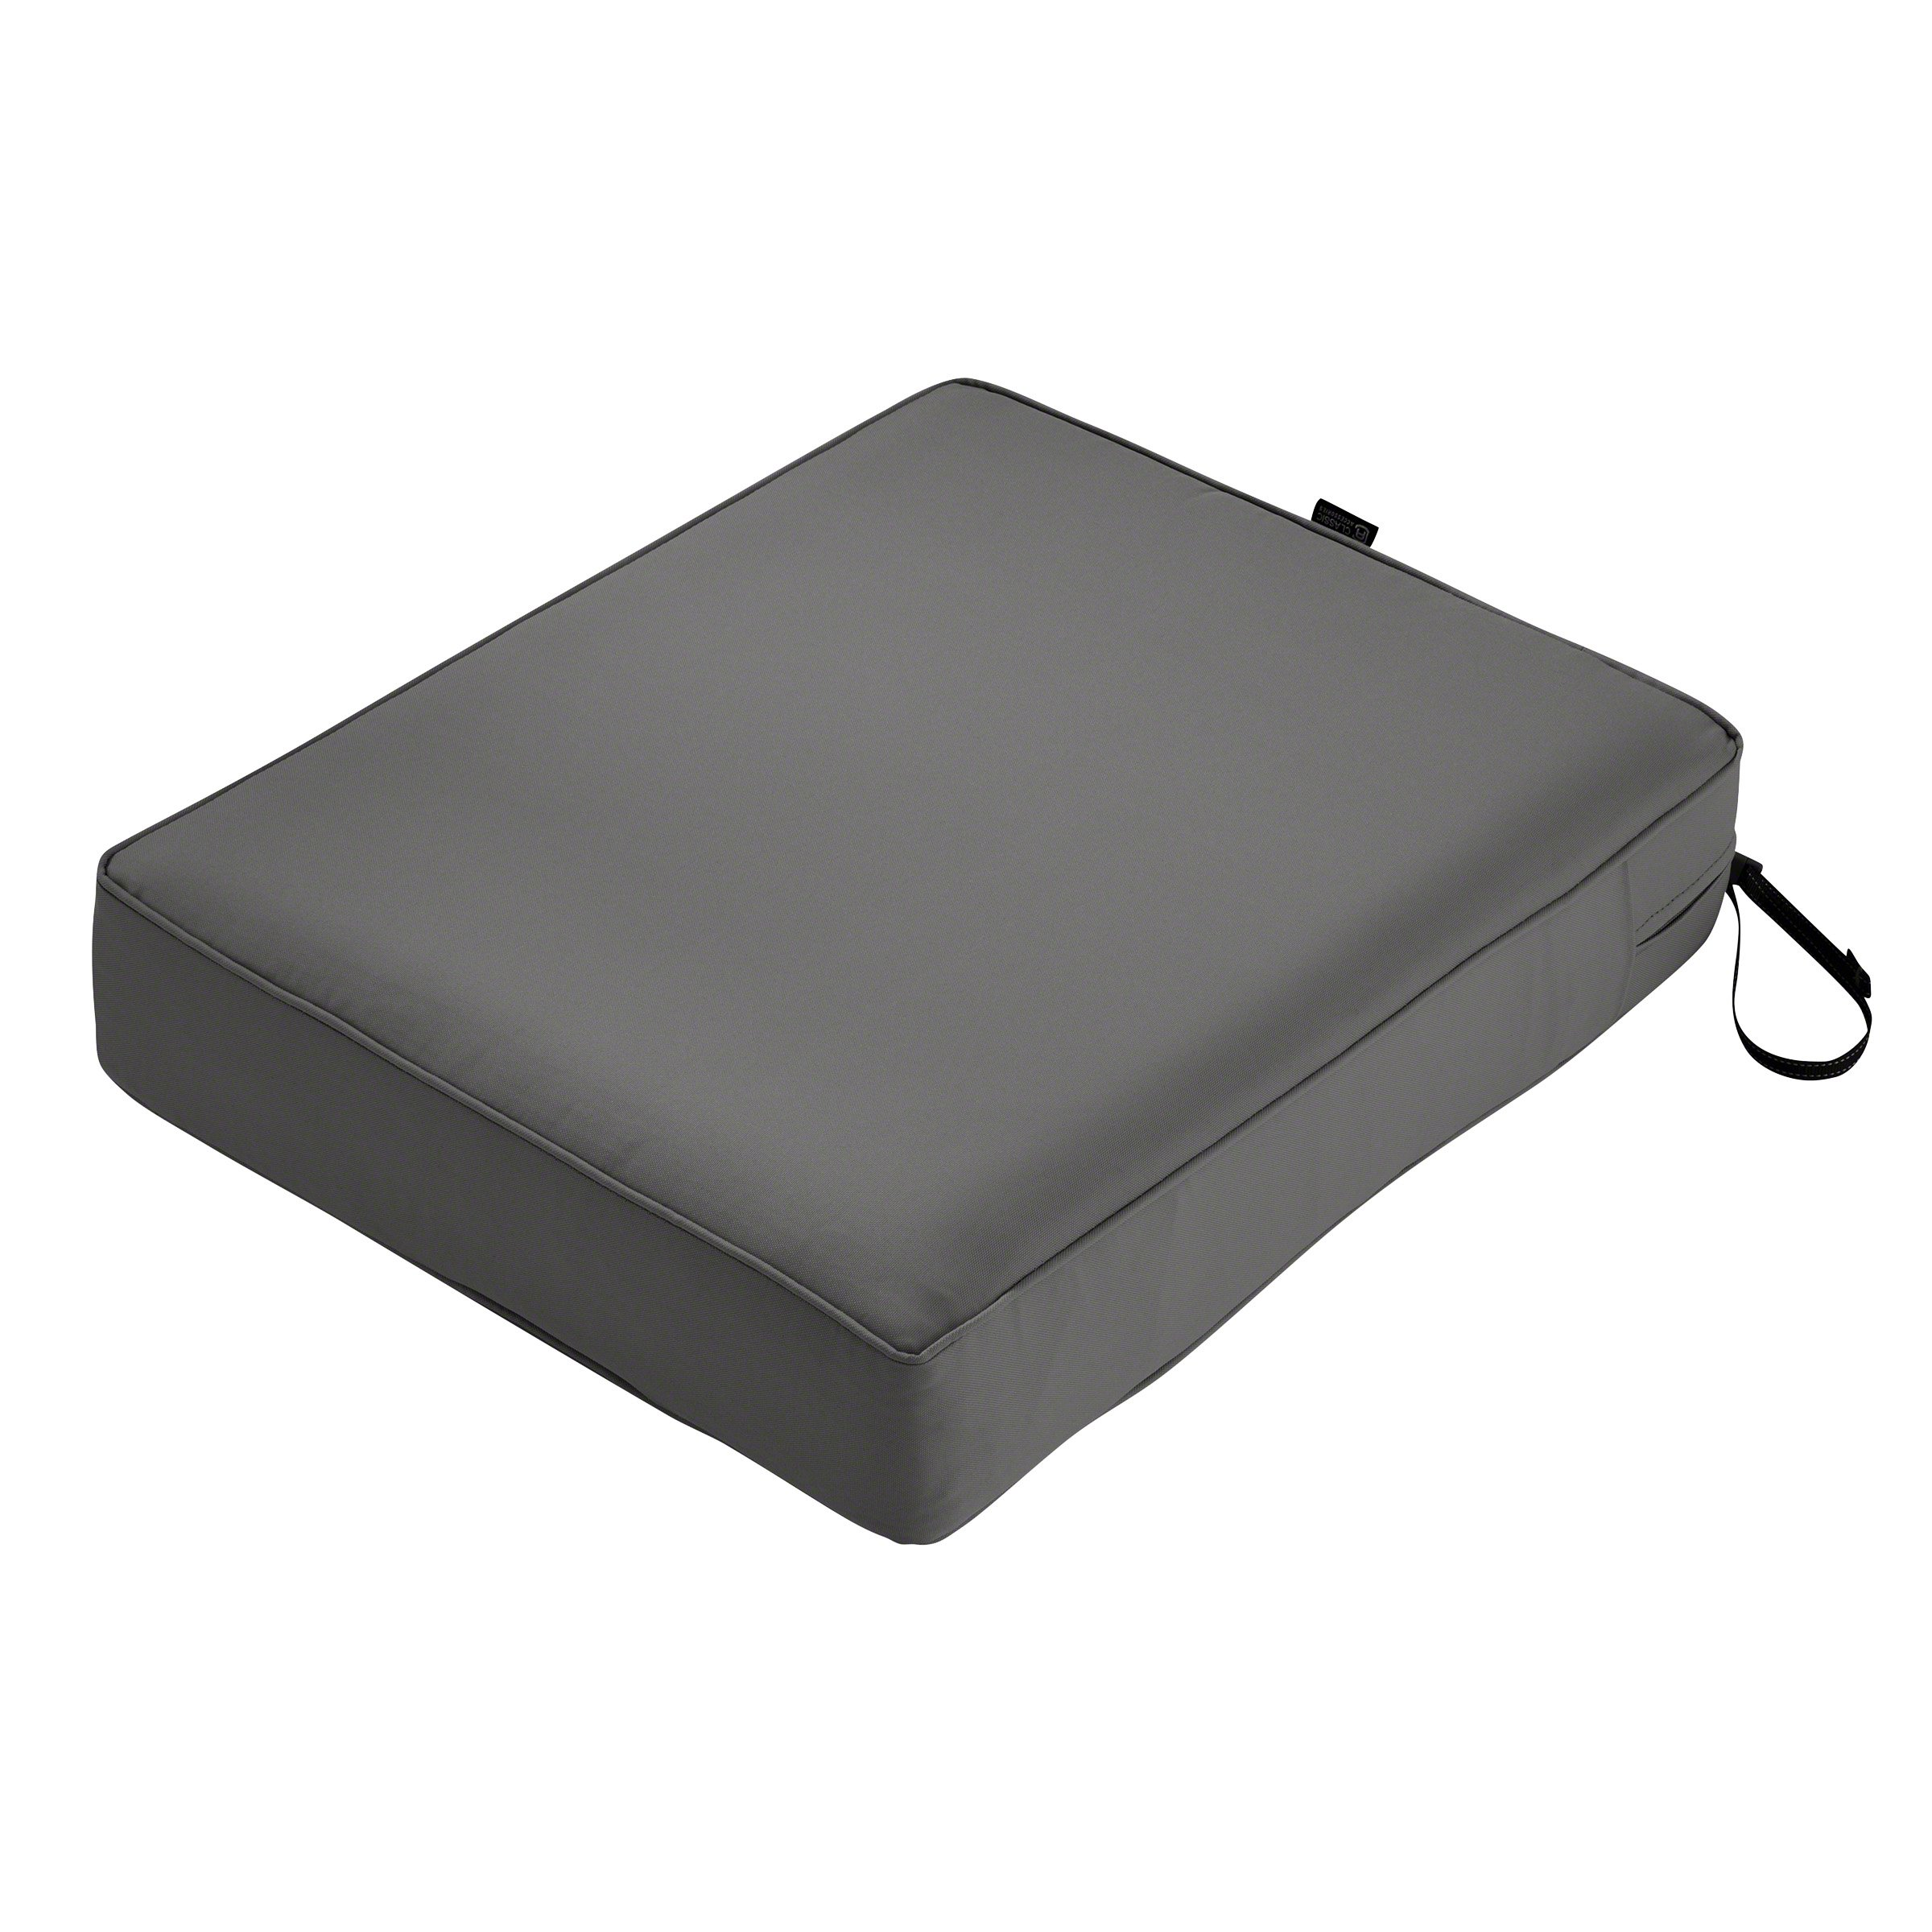 Classic Accessories Montlake Seat Cushion Foam & Slip Cover, Light Charcoal, 25x27x5 Thick